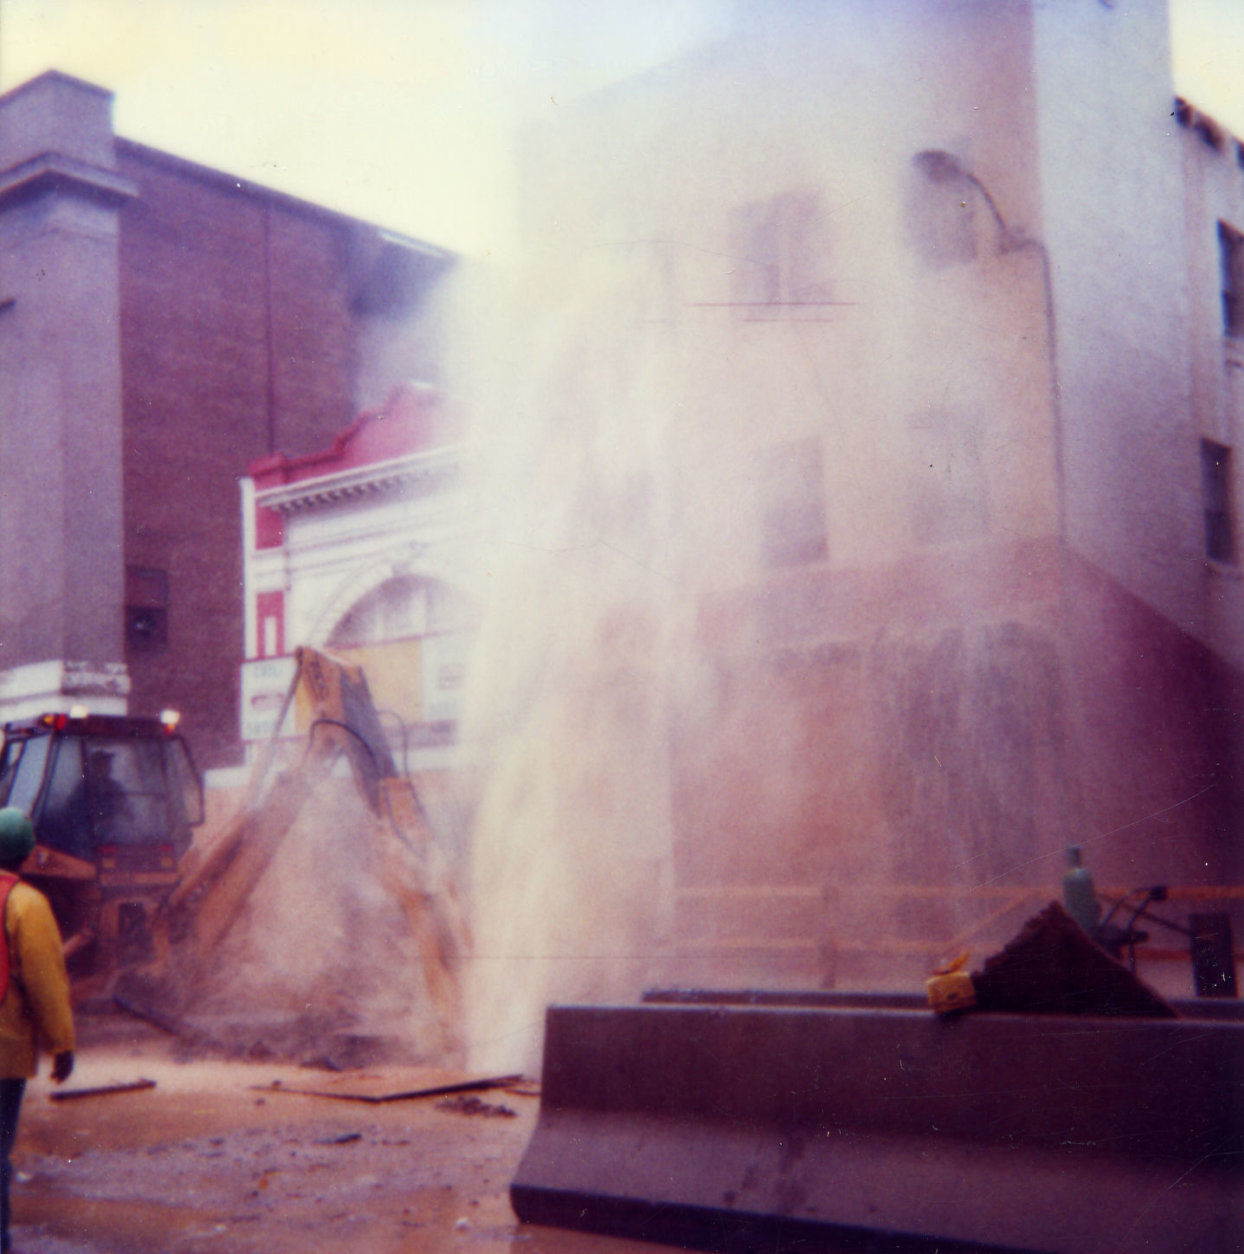 If you can make it out behind the debris, that's Ben's Chili Bowl during the construction of the Green Line in 1987. (Courtesy of Ben's Chili Bowl)